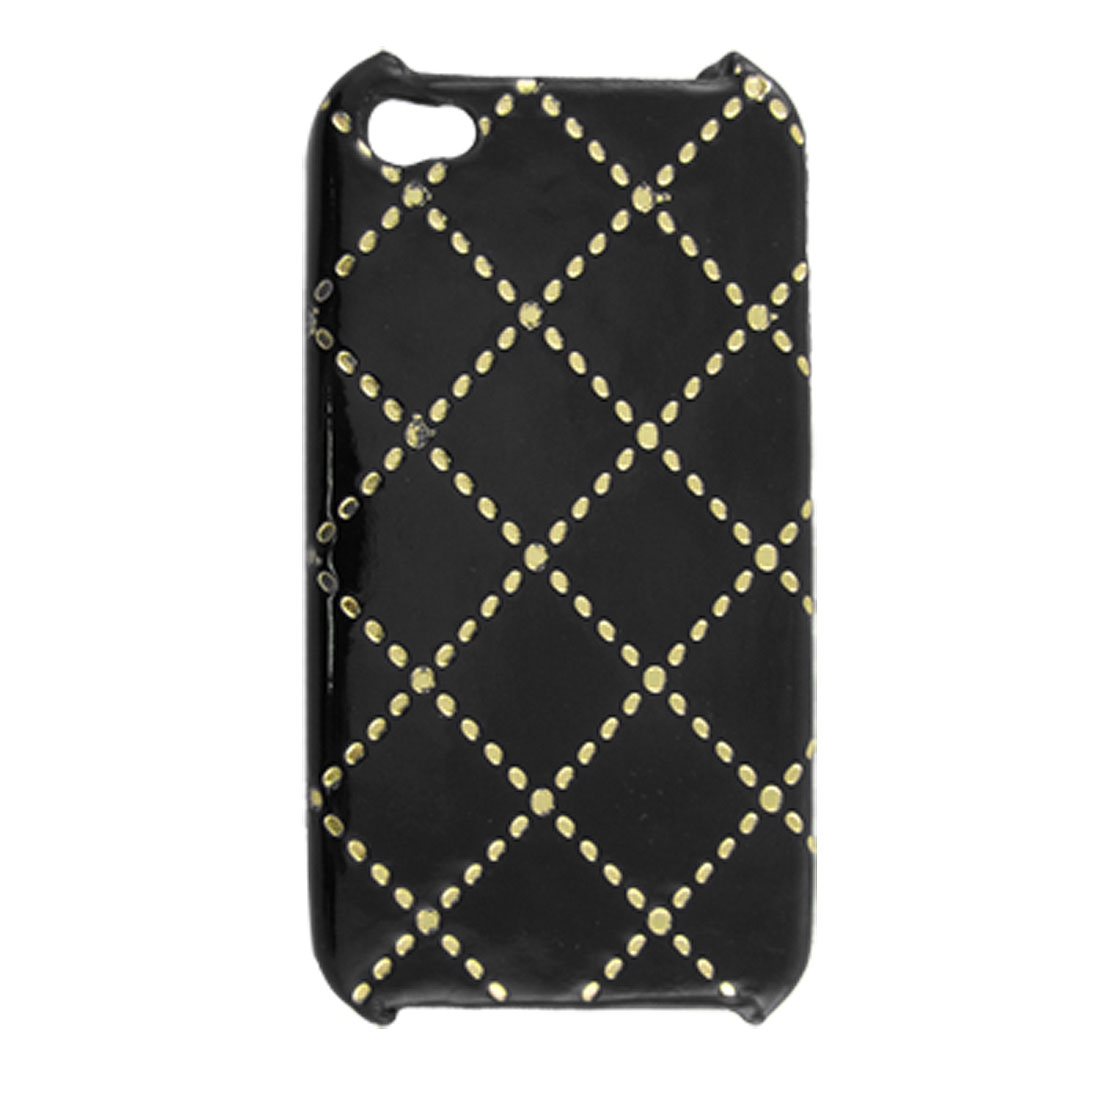 Black Faux Leather Coated Plastic Rhombus Pattern Cover for iPhone 4 4G